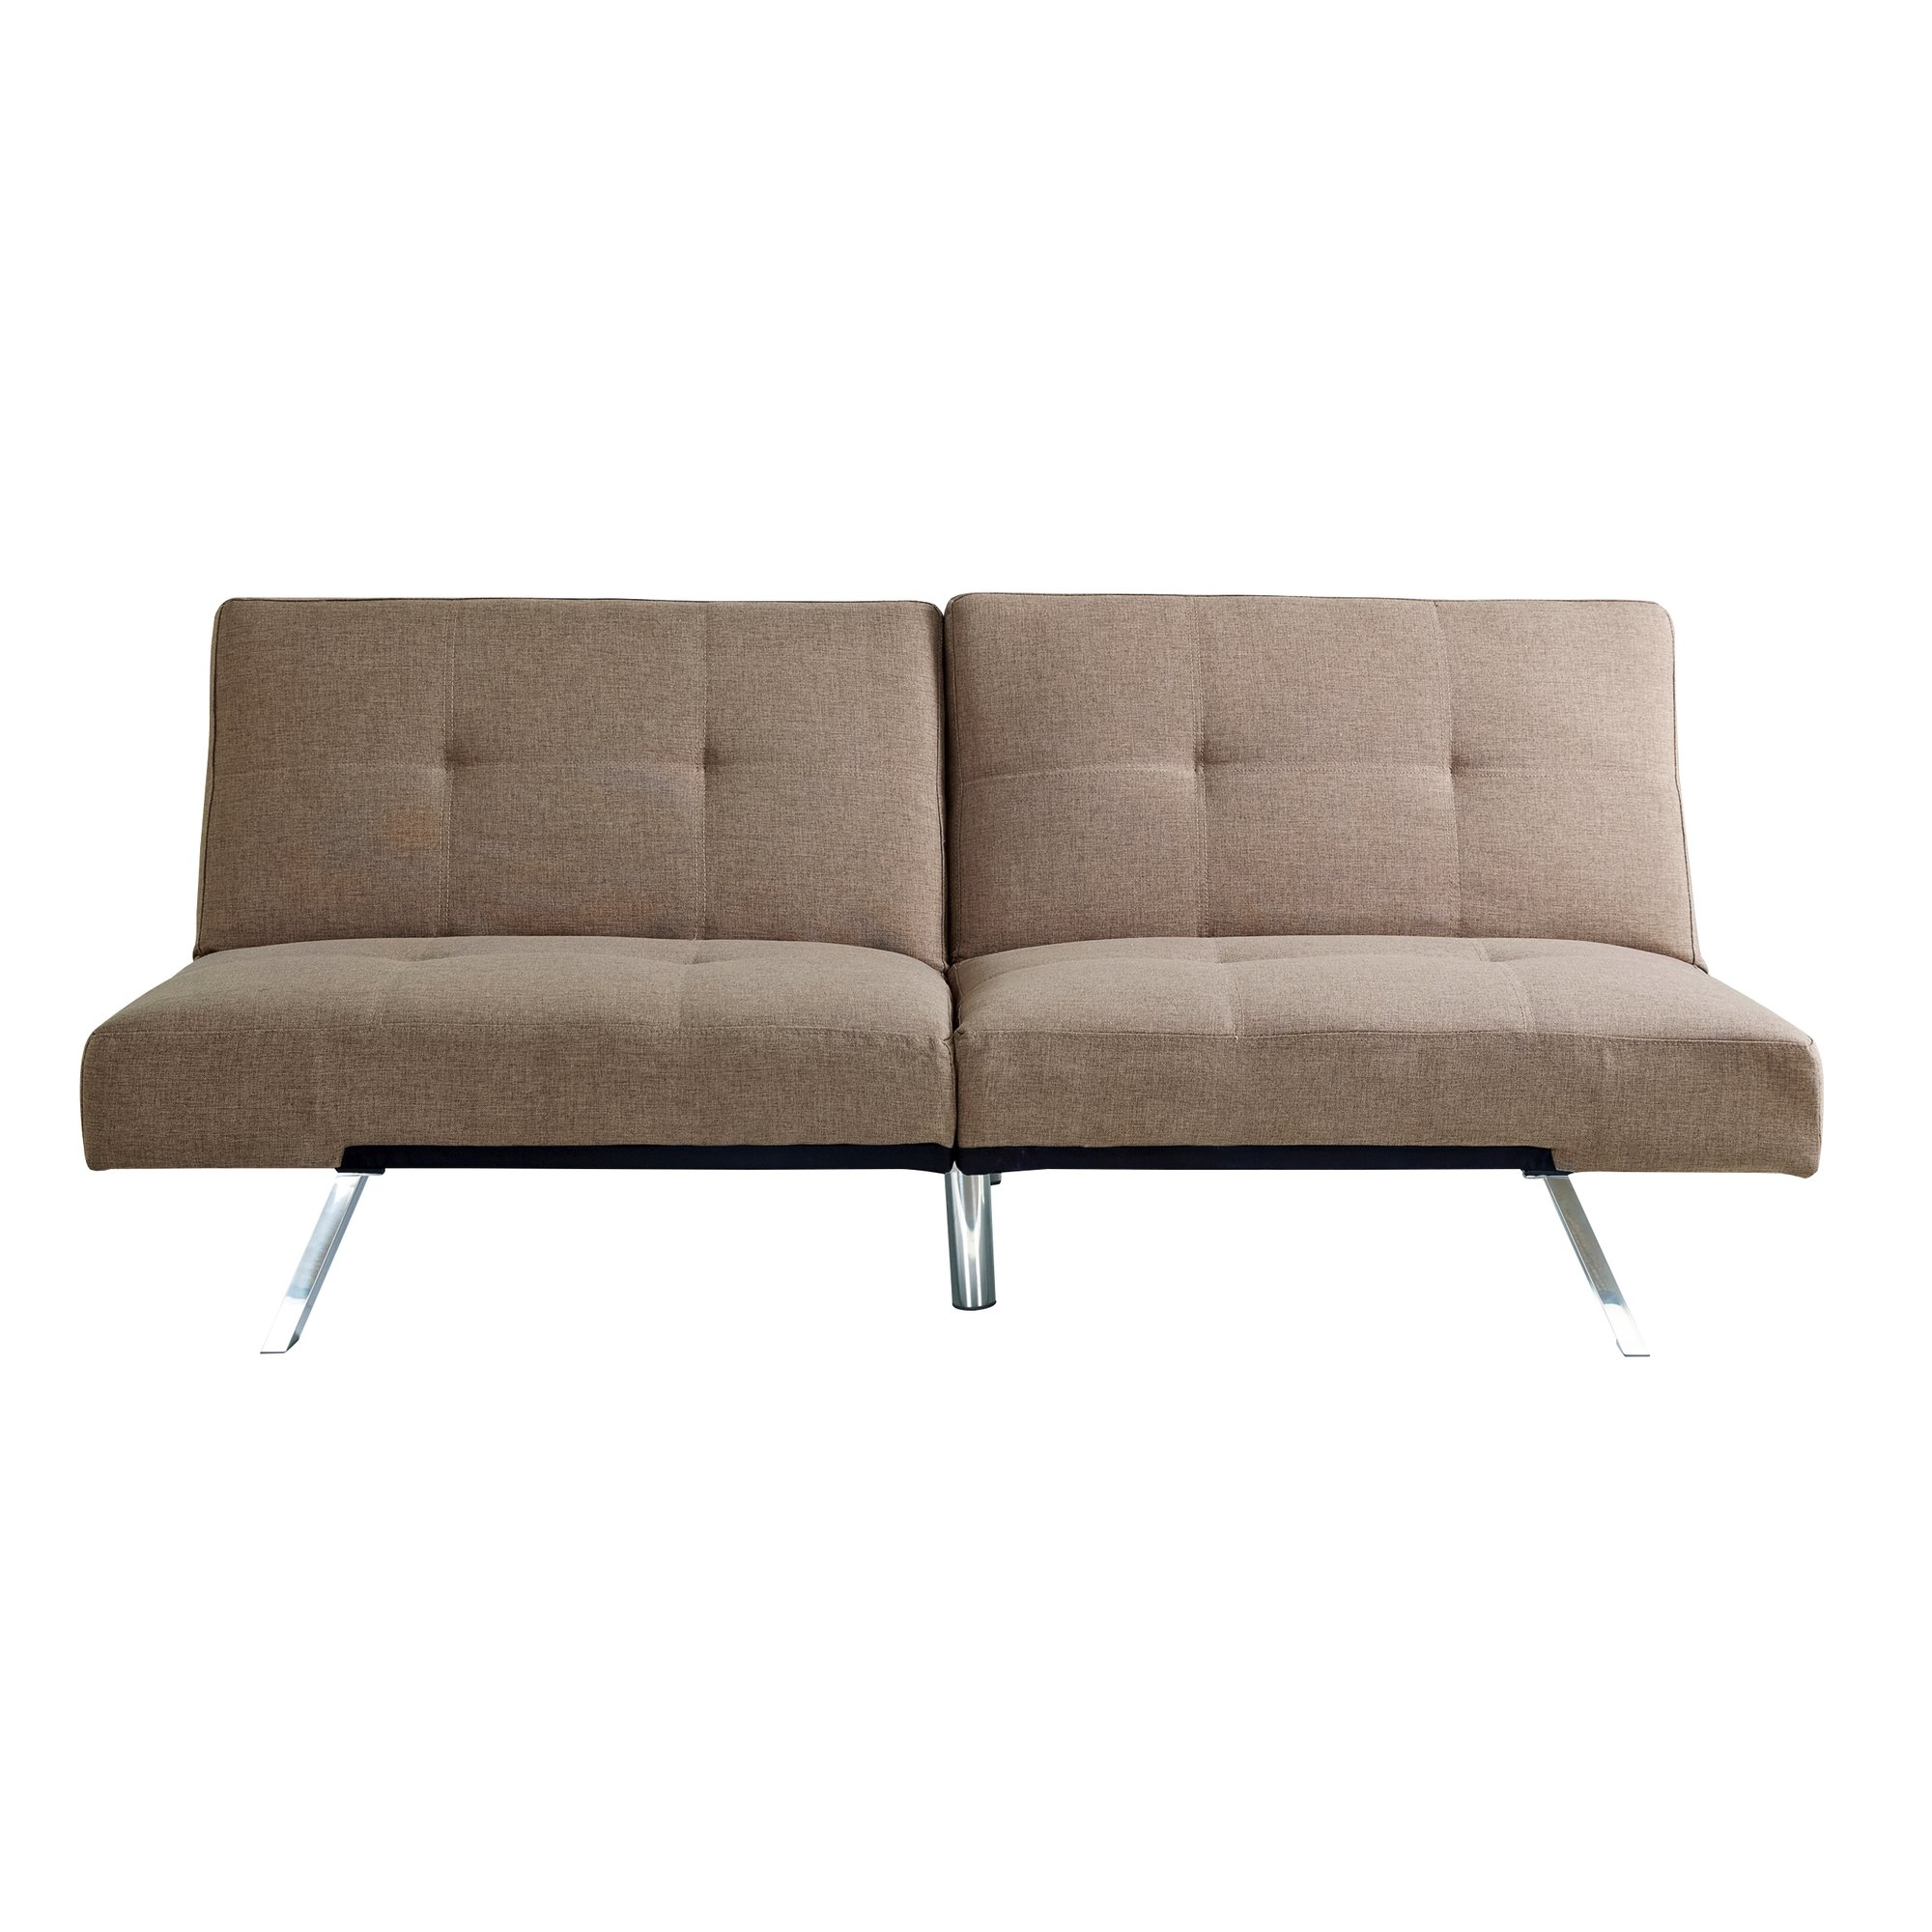 Barton 70 Sleeper Sofa Reviews Joss Main With 70 Sleeper Sofa (View 2 of 15)